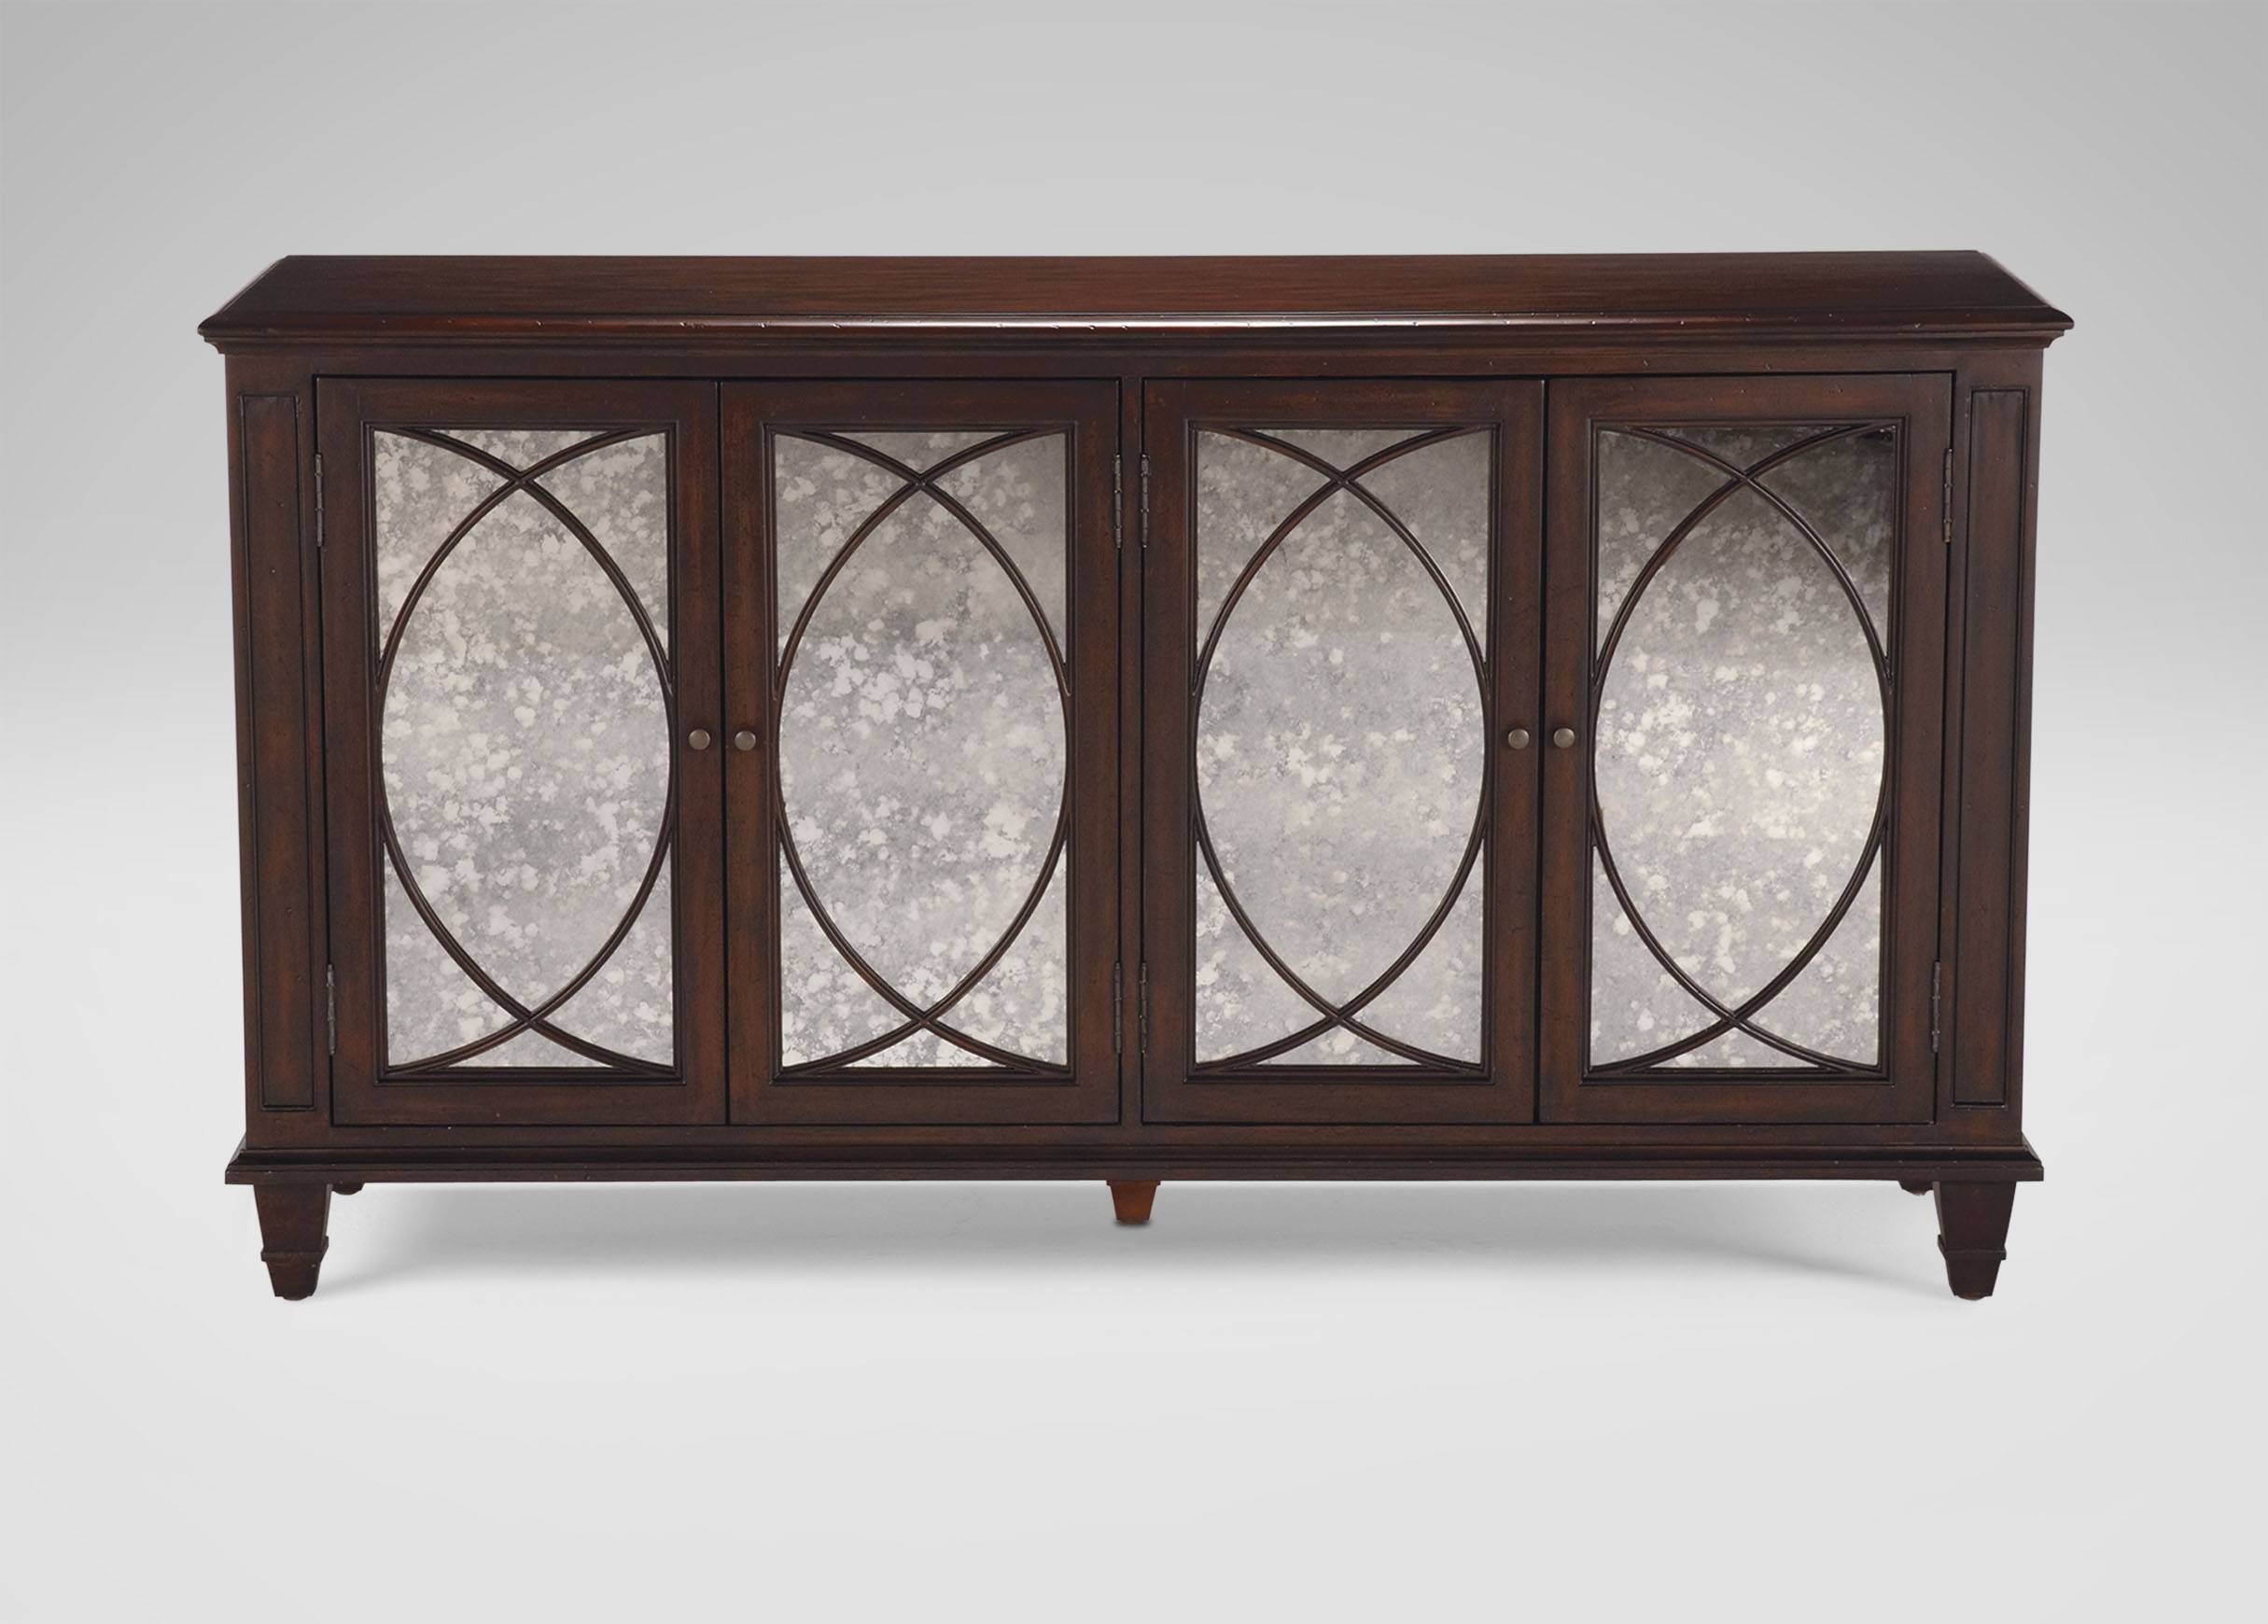 Brandt Buffet | Buffets, Sideboards & Servers For Most Recently Released Ethan Allen Sideboards (View 6 of 15)